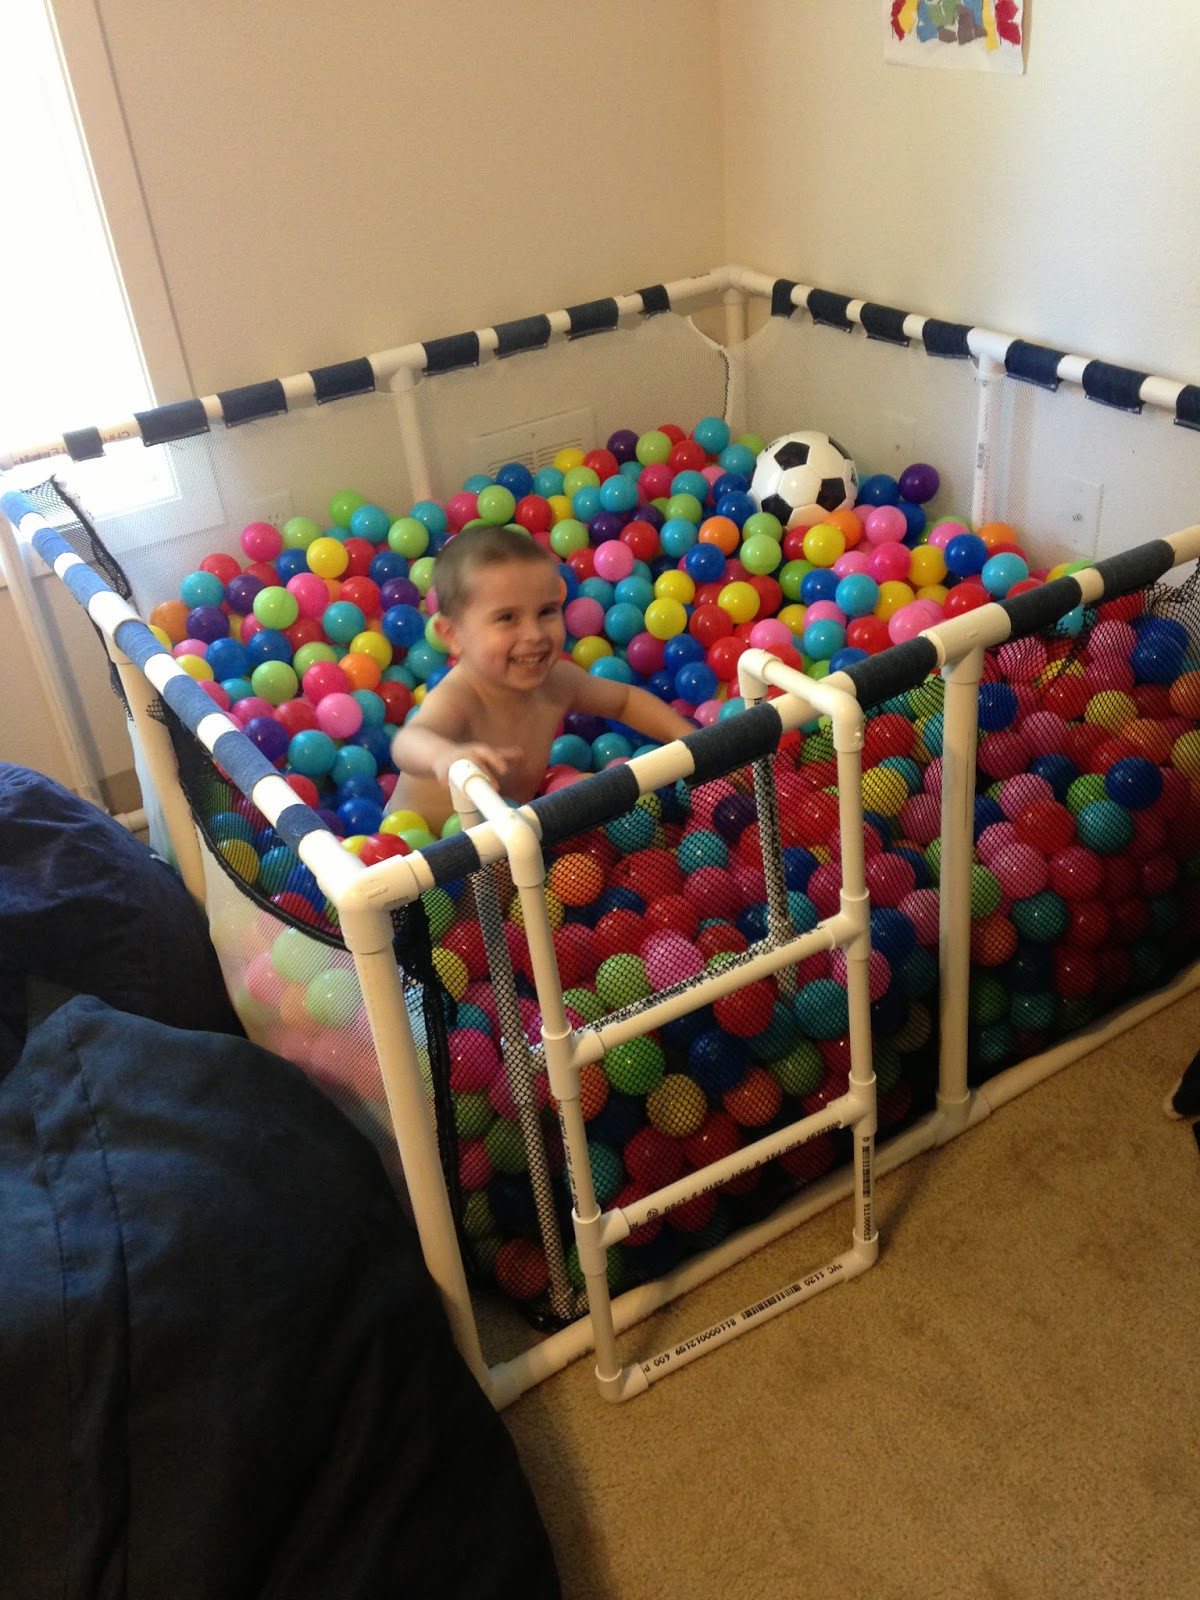 Best ideas about DIY Ball Pit For Toddlers . Save or Pin Cup of Autism Ball Pit Fun Now.